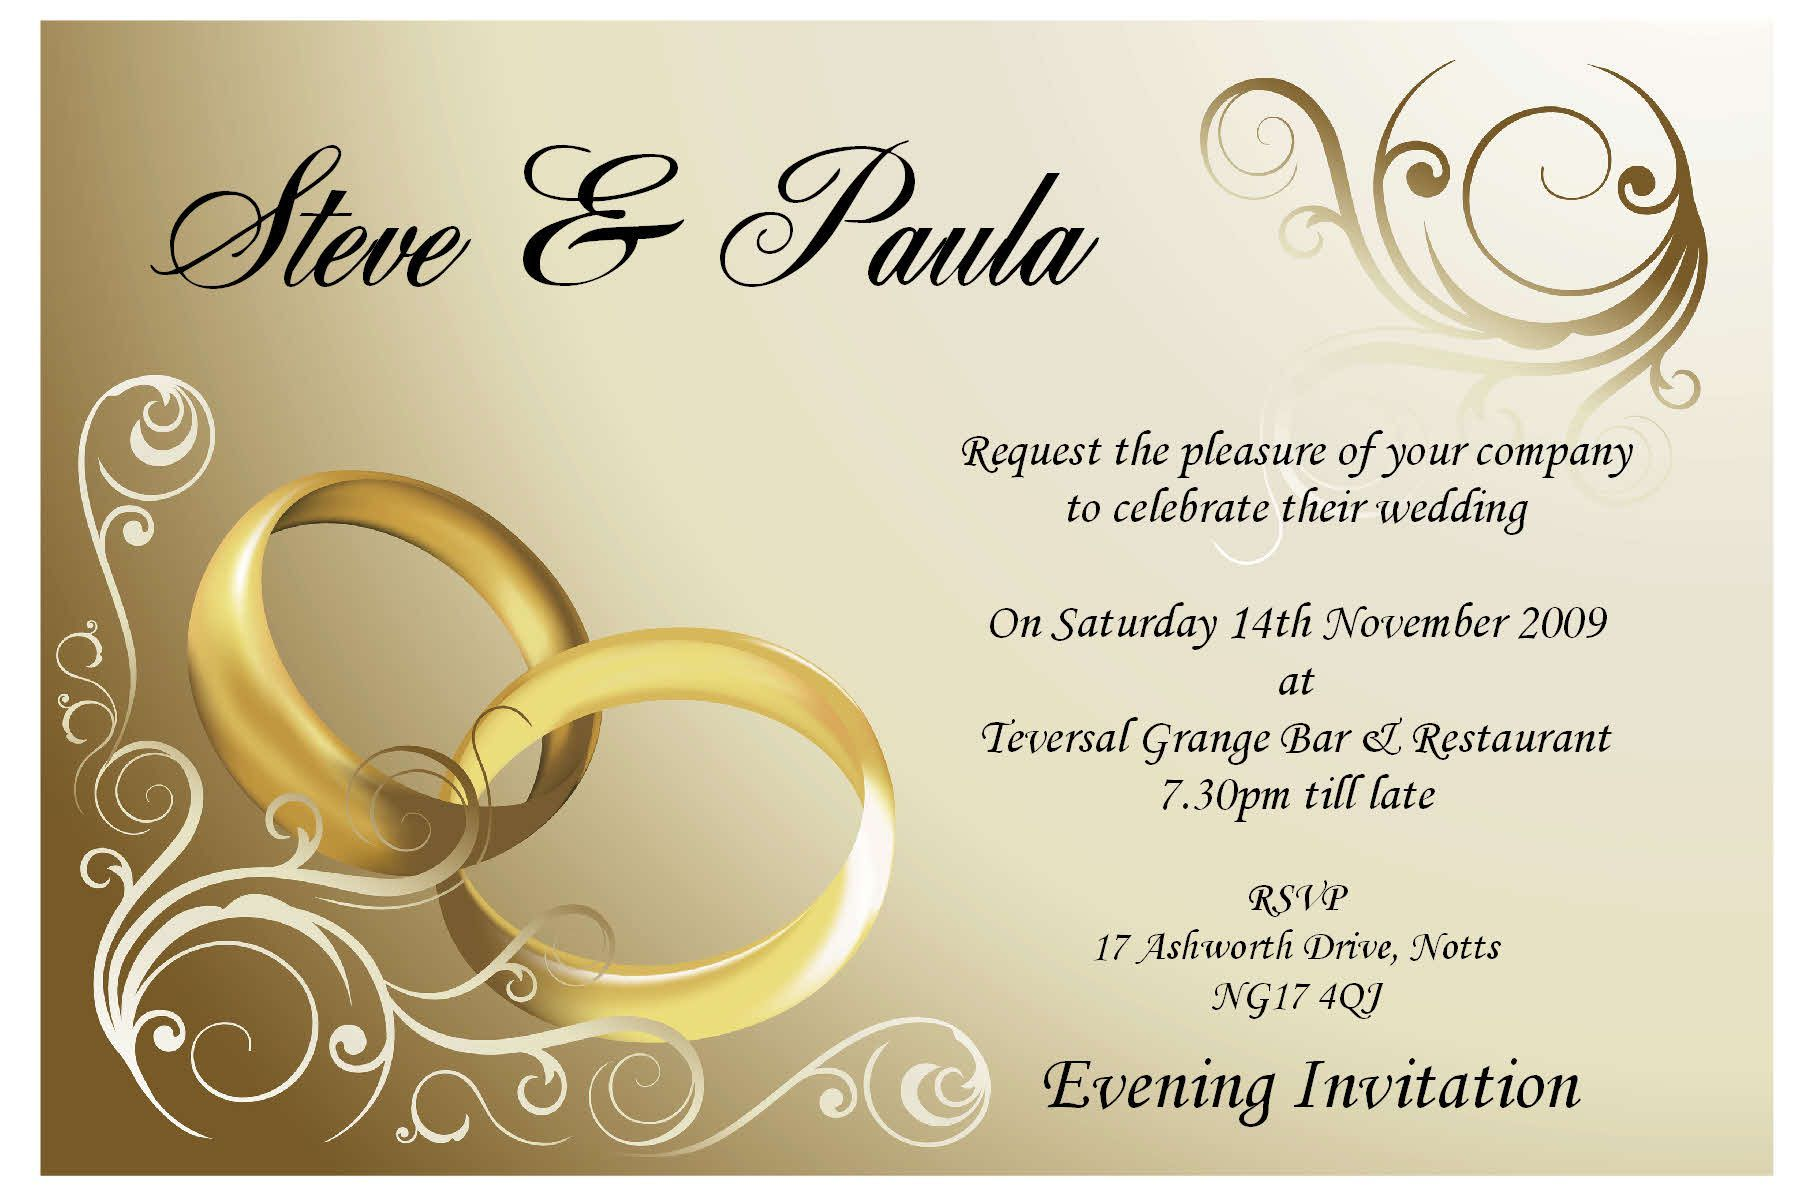 Invitation Cards For Wedding: Wedding Invitation Card Design Online Free